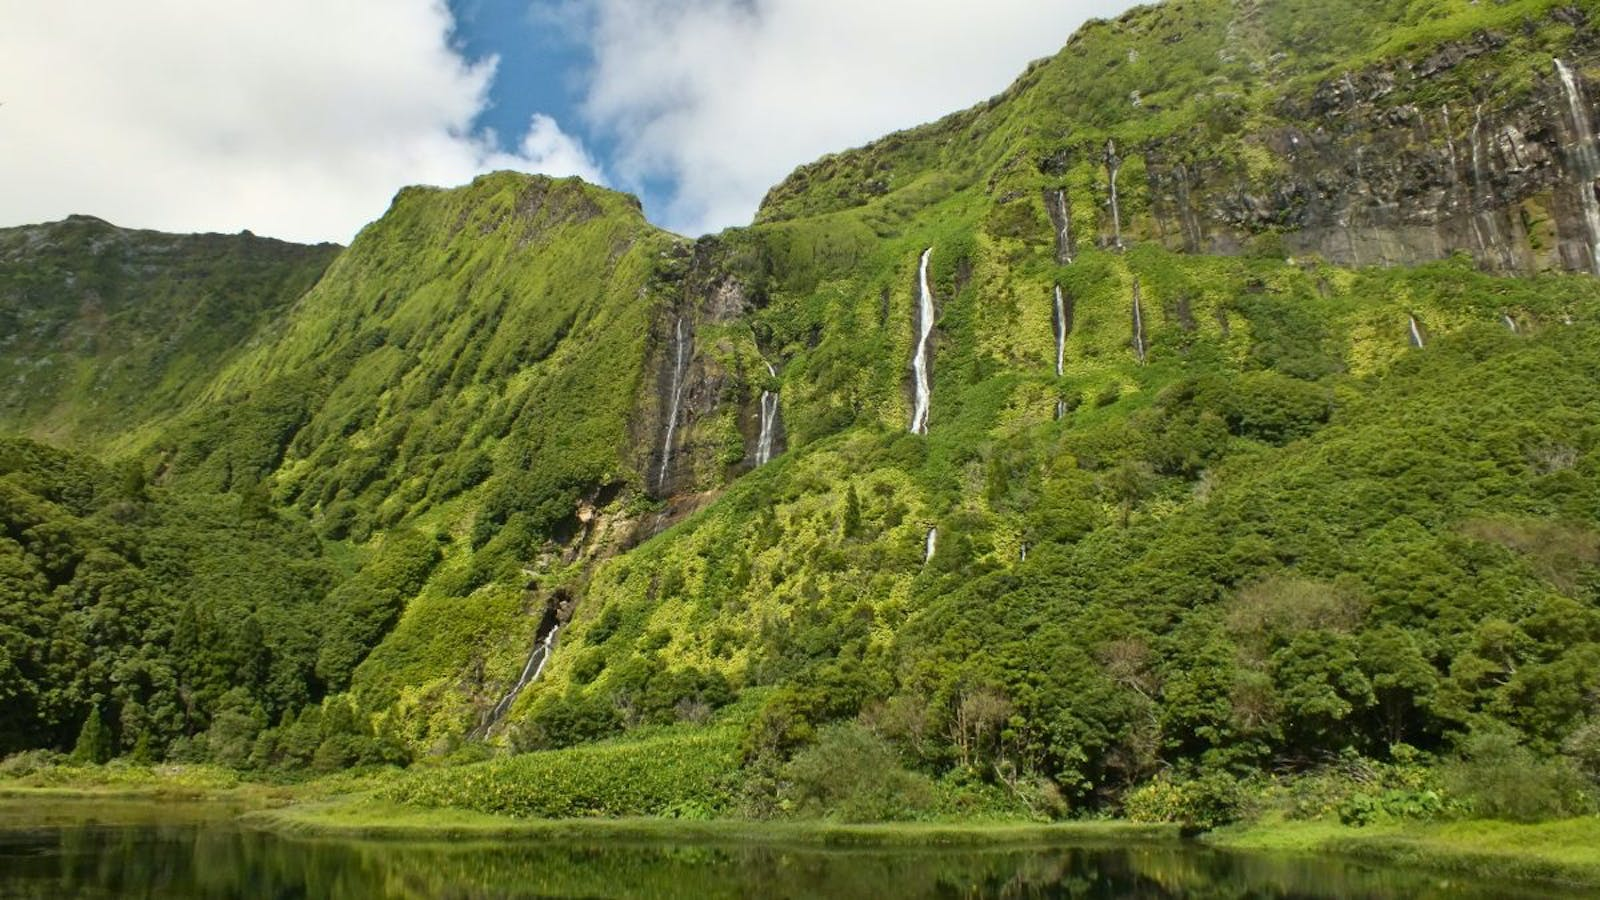 Azores Temperate Mixed Forests